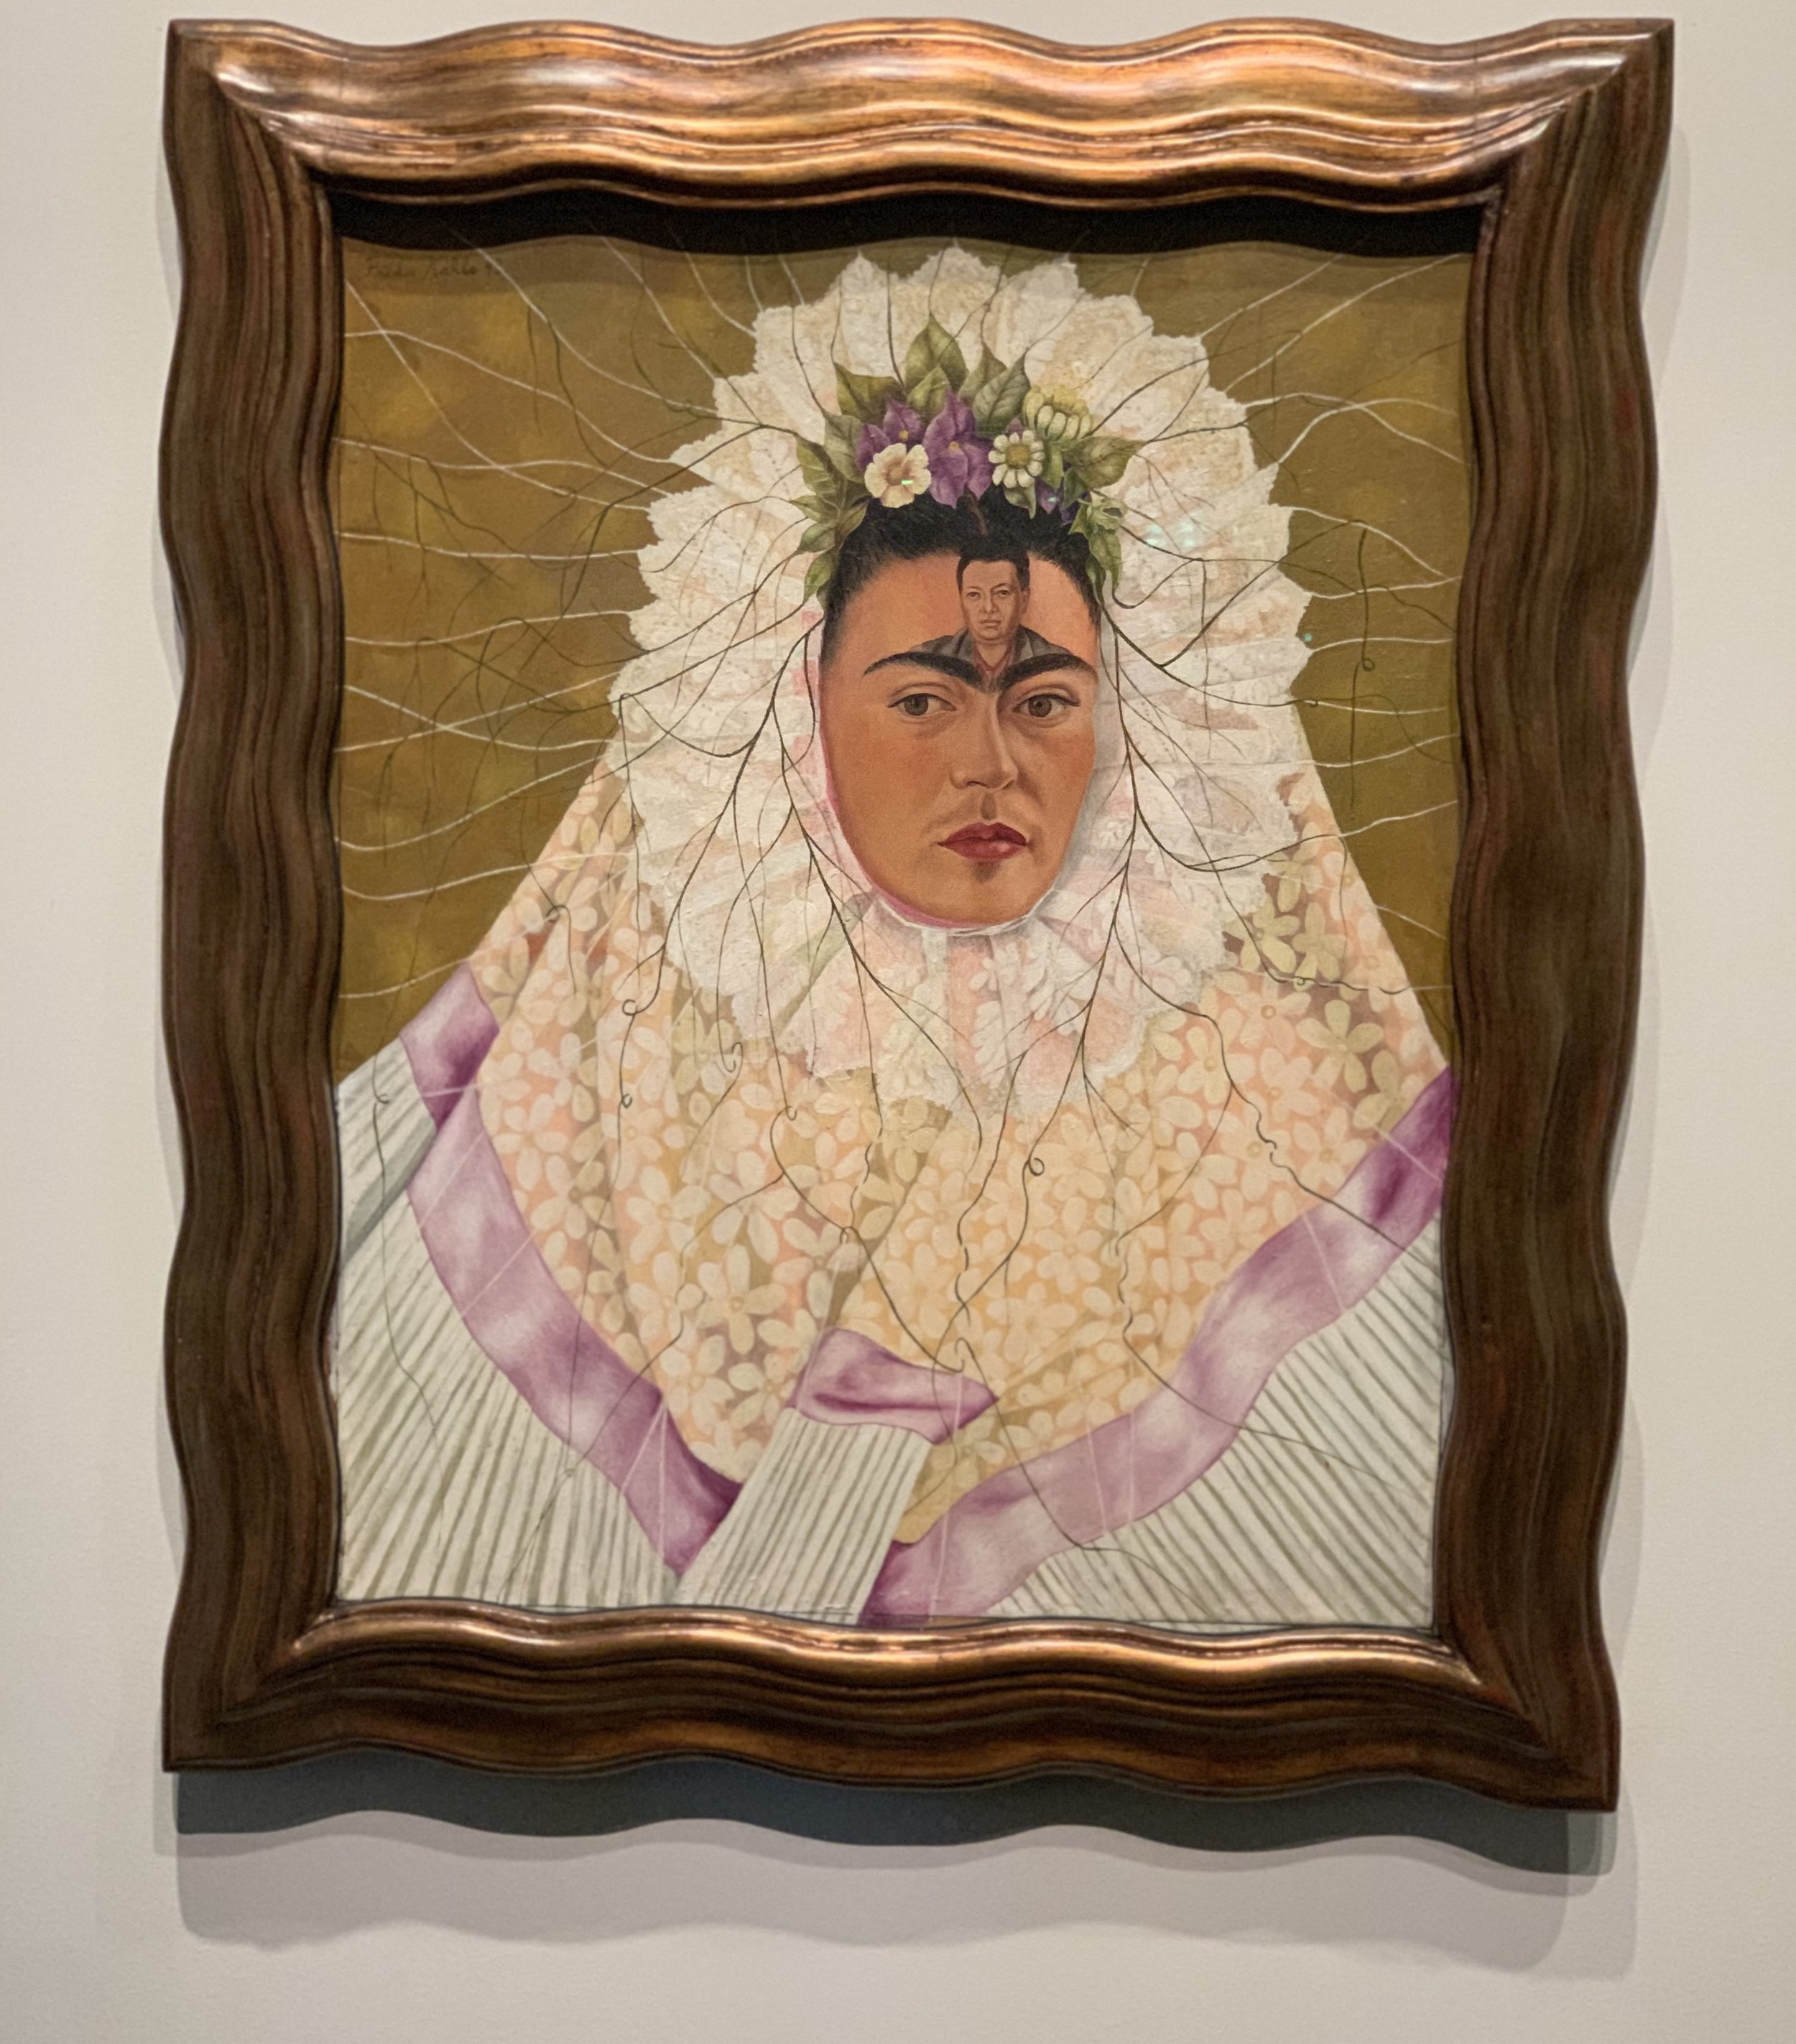 Self-Portrait as a Tehuana (Diego on my Mind) by Frida Kahlo